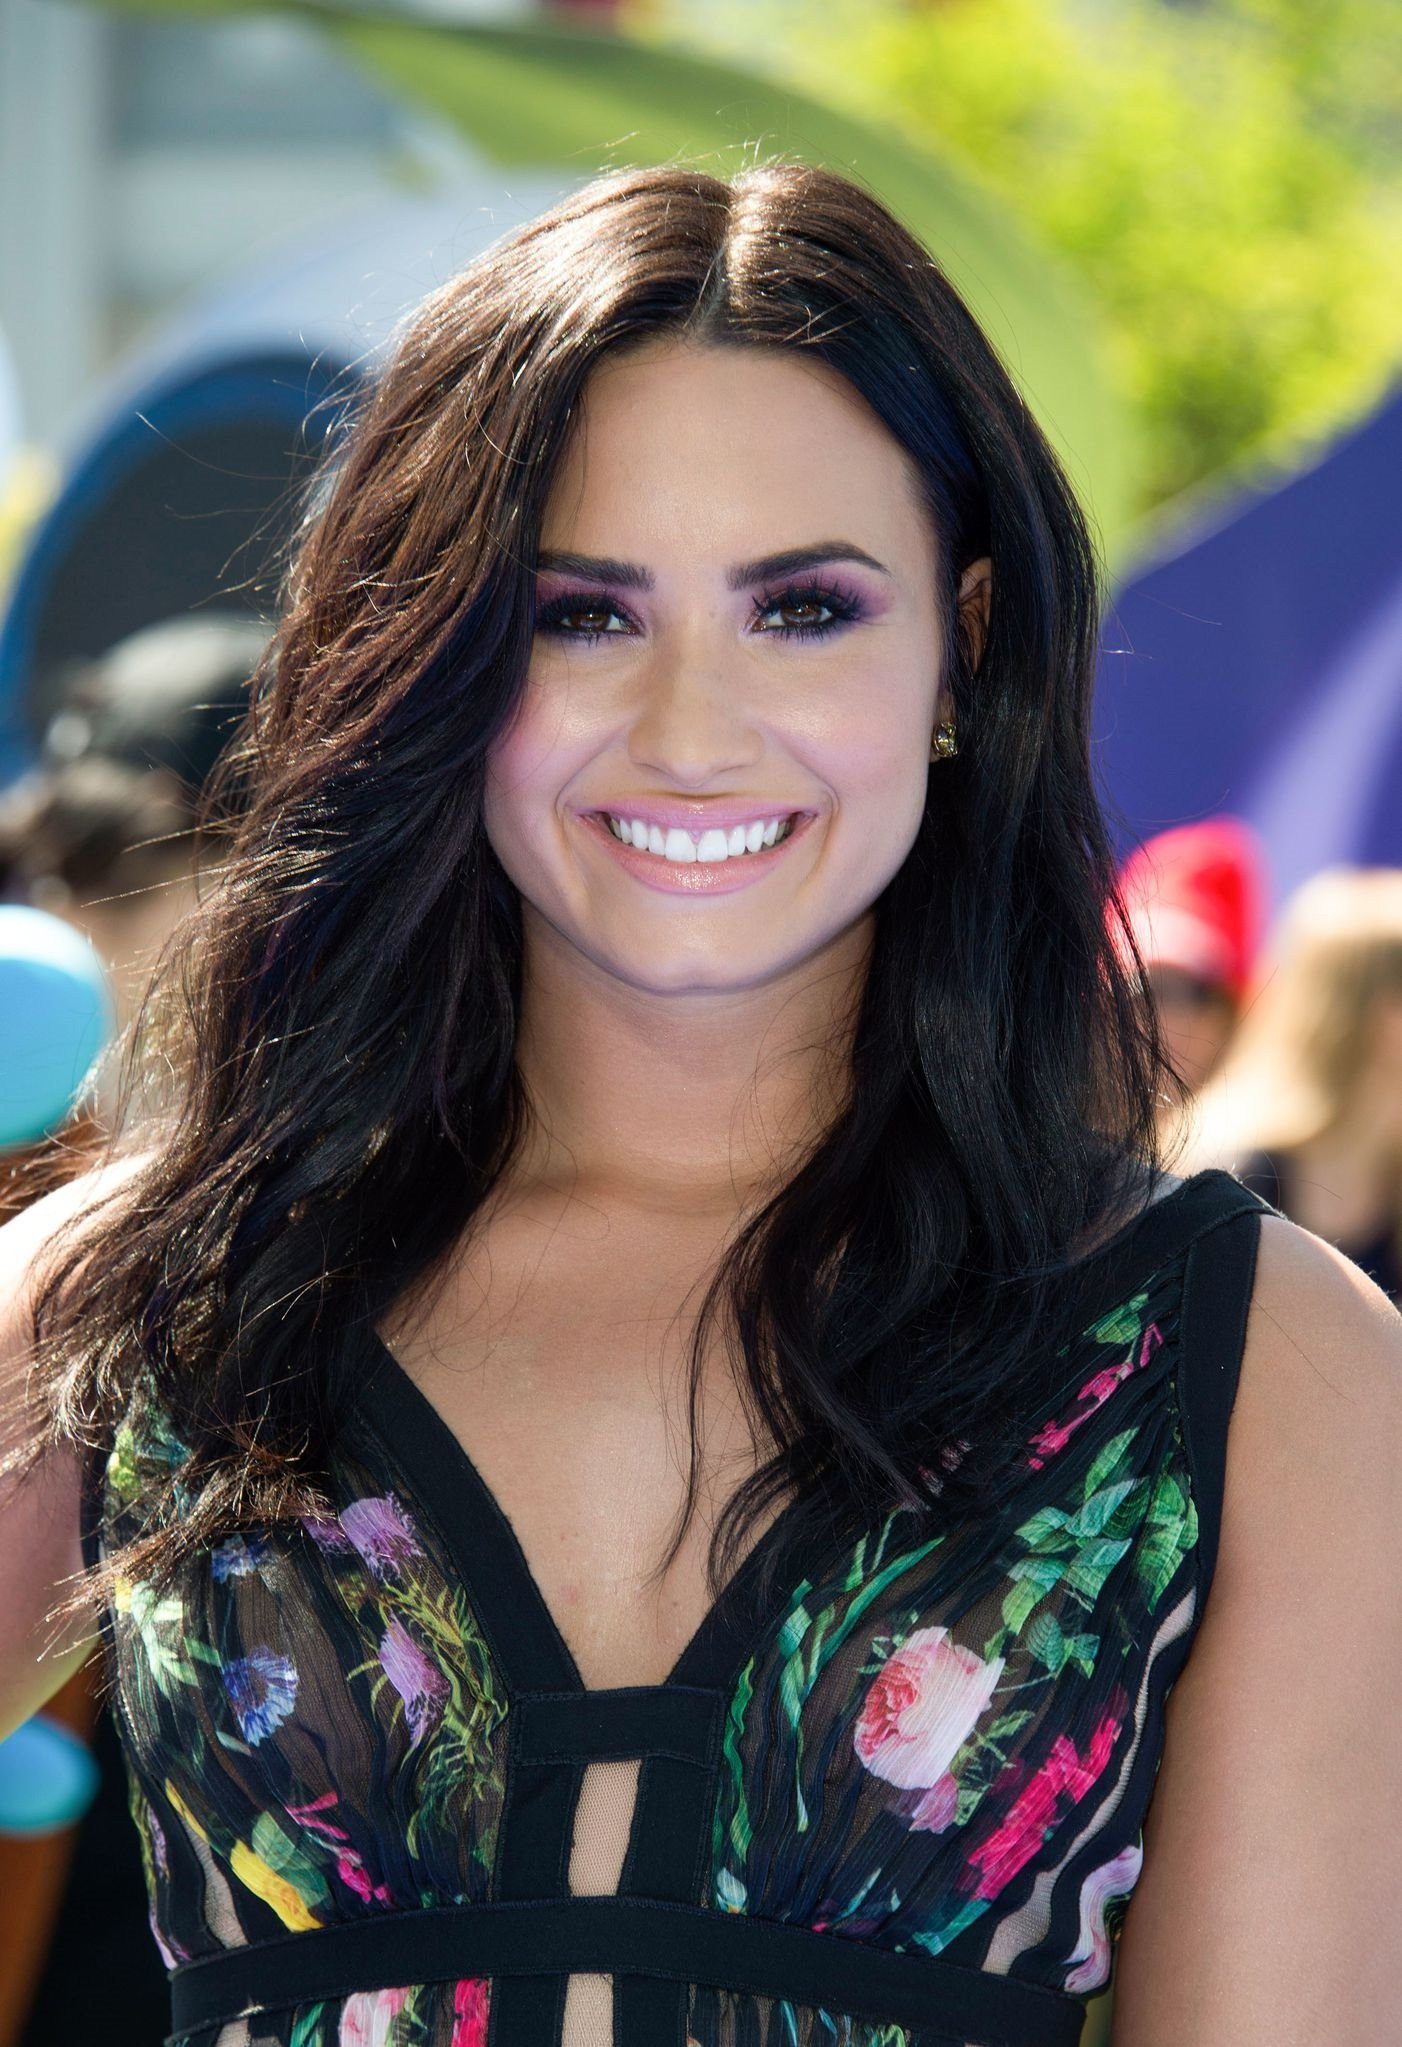 Demi Lovato Photos - Demi Lovato Net Worth, Pics, Wallpapers, Career and Biography